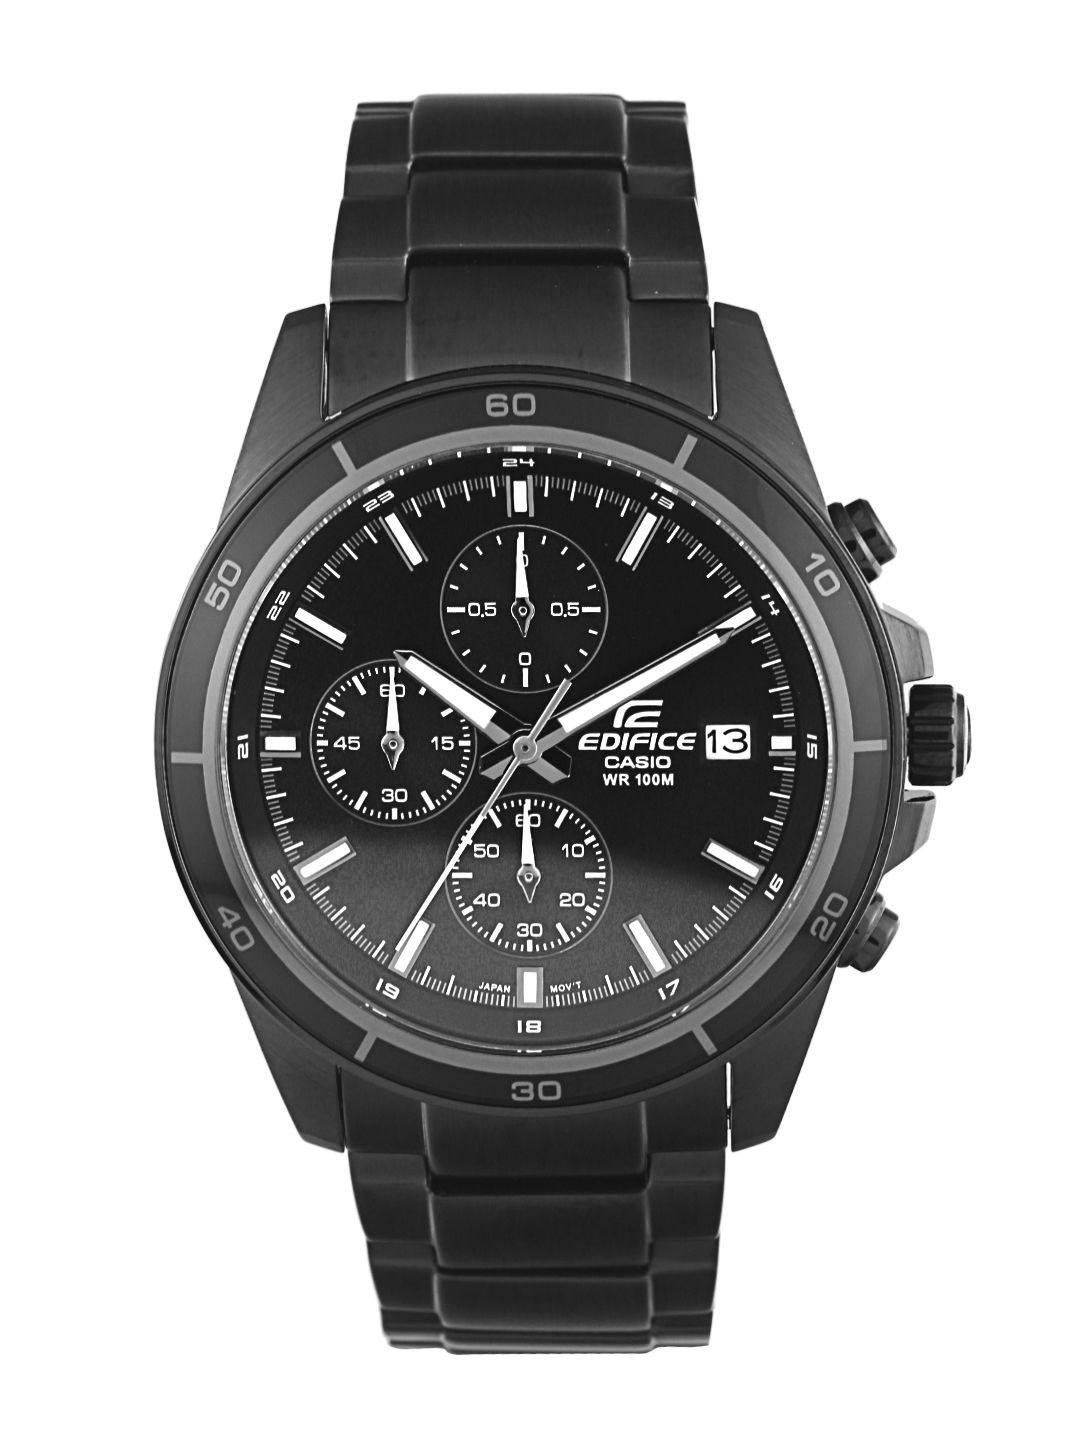 Casio Edifice Men Black Analogue watch EX206 EFR 526BK 1A1VUDF